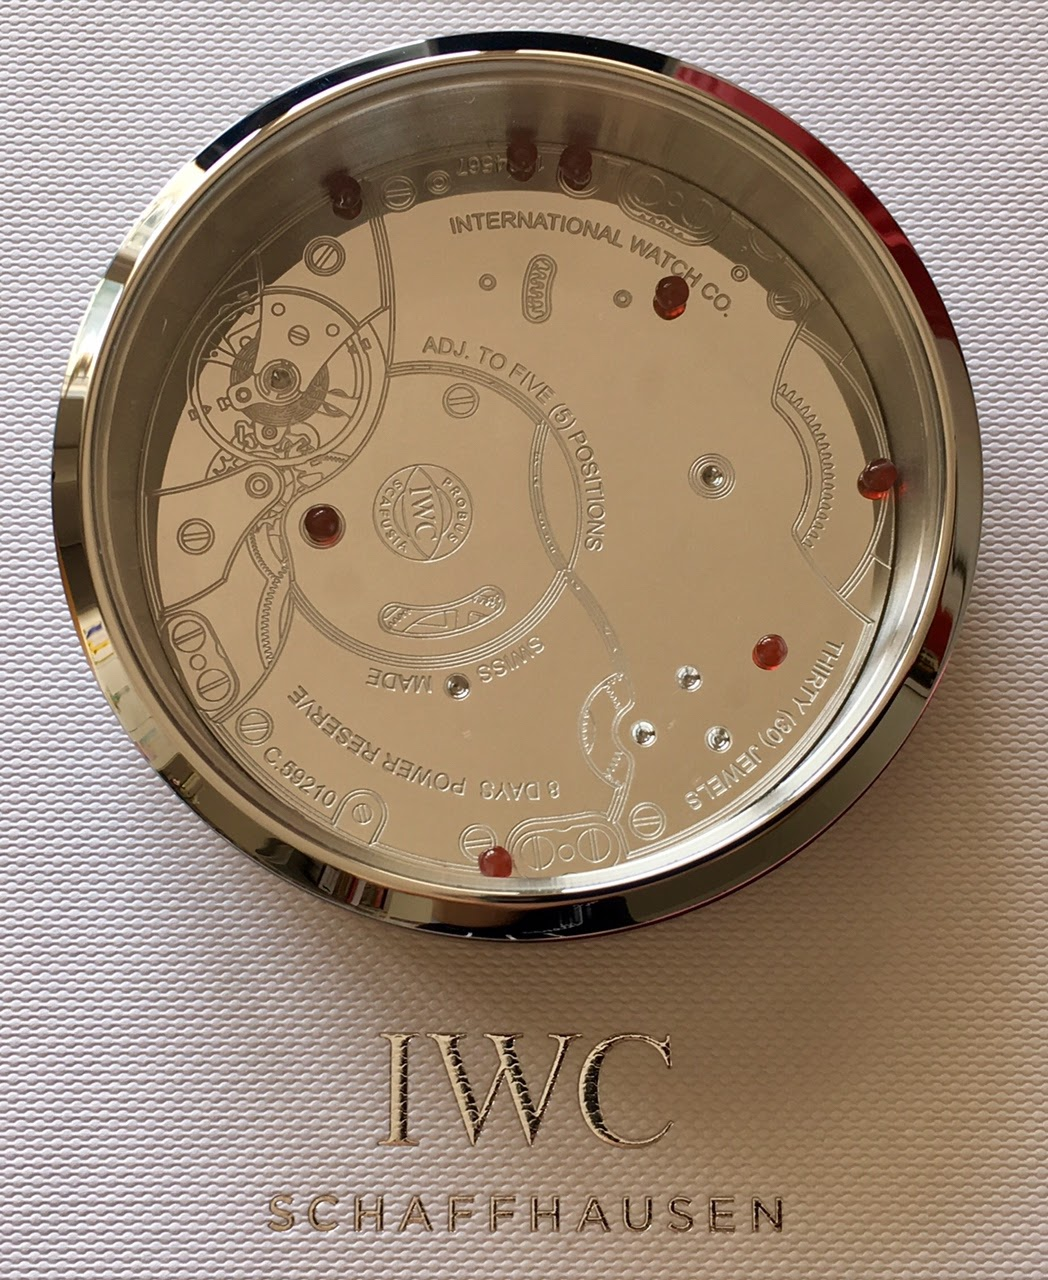 6627df494188 IWC paperweight puzzle (put all the little